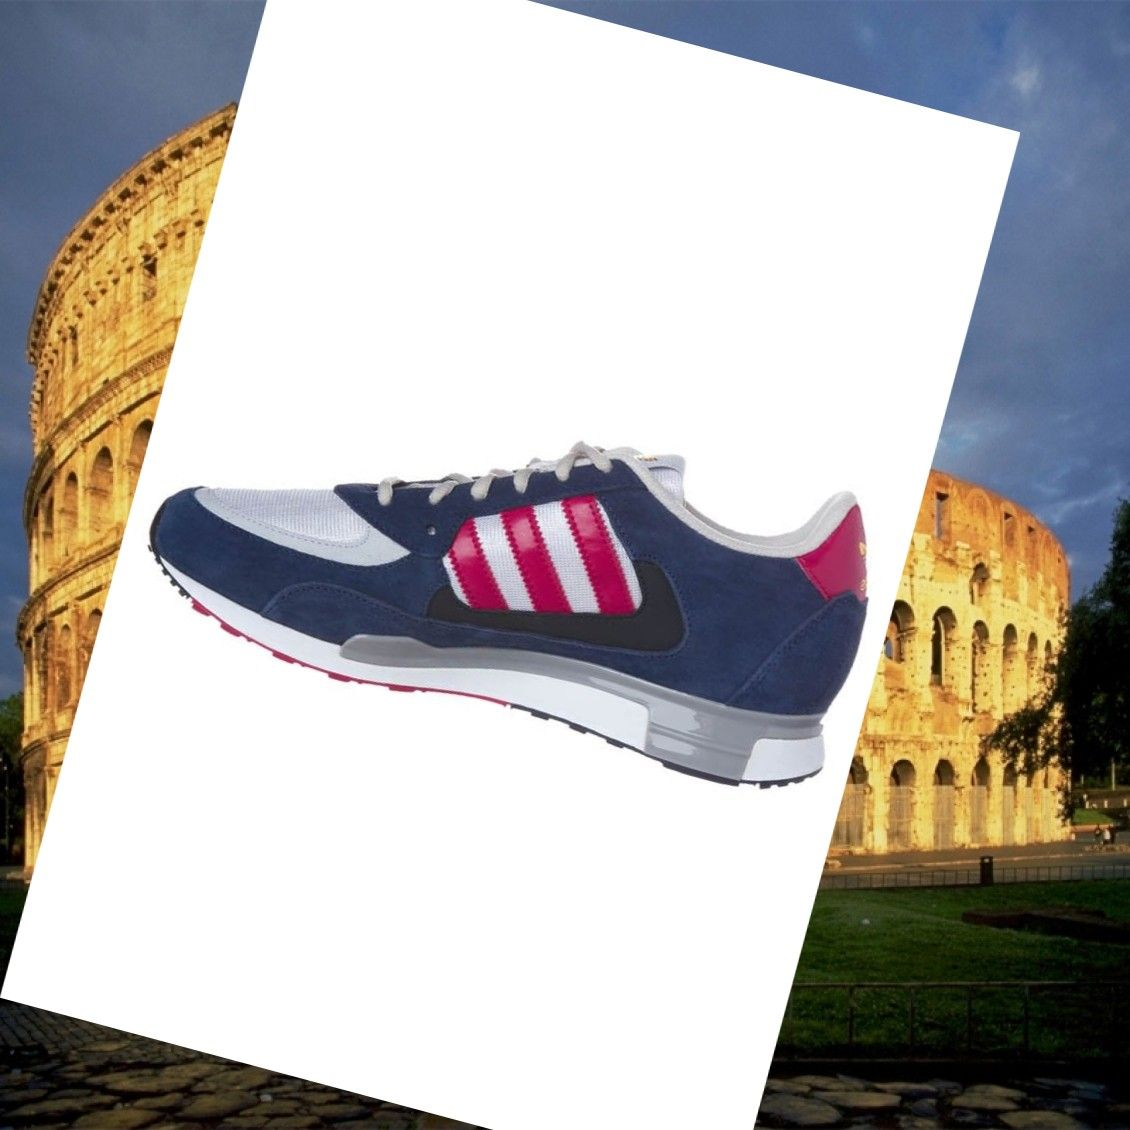 best service 74c5c 369e5 ... low price adidas zx 850 running shoes mens navy blue white pink hot  sale hot cff54